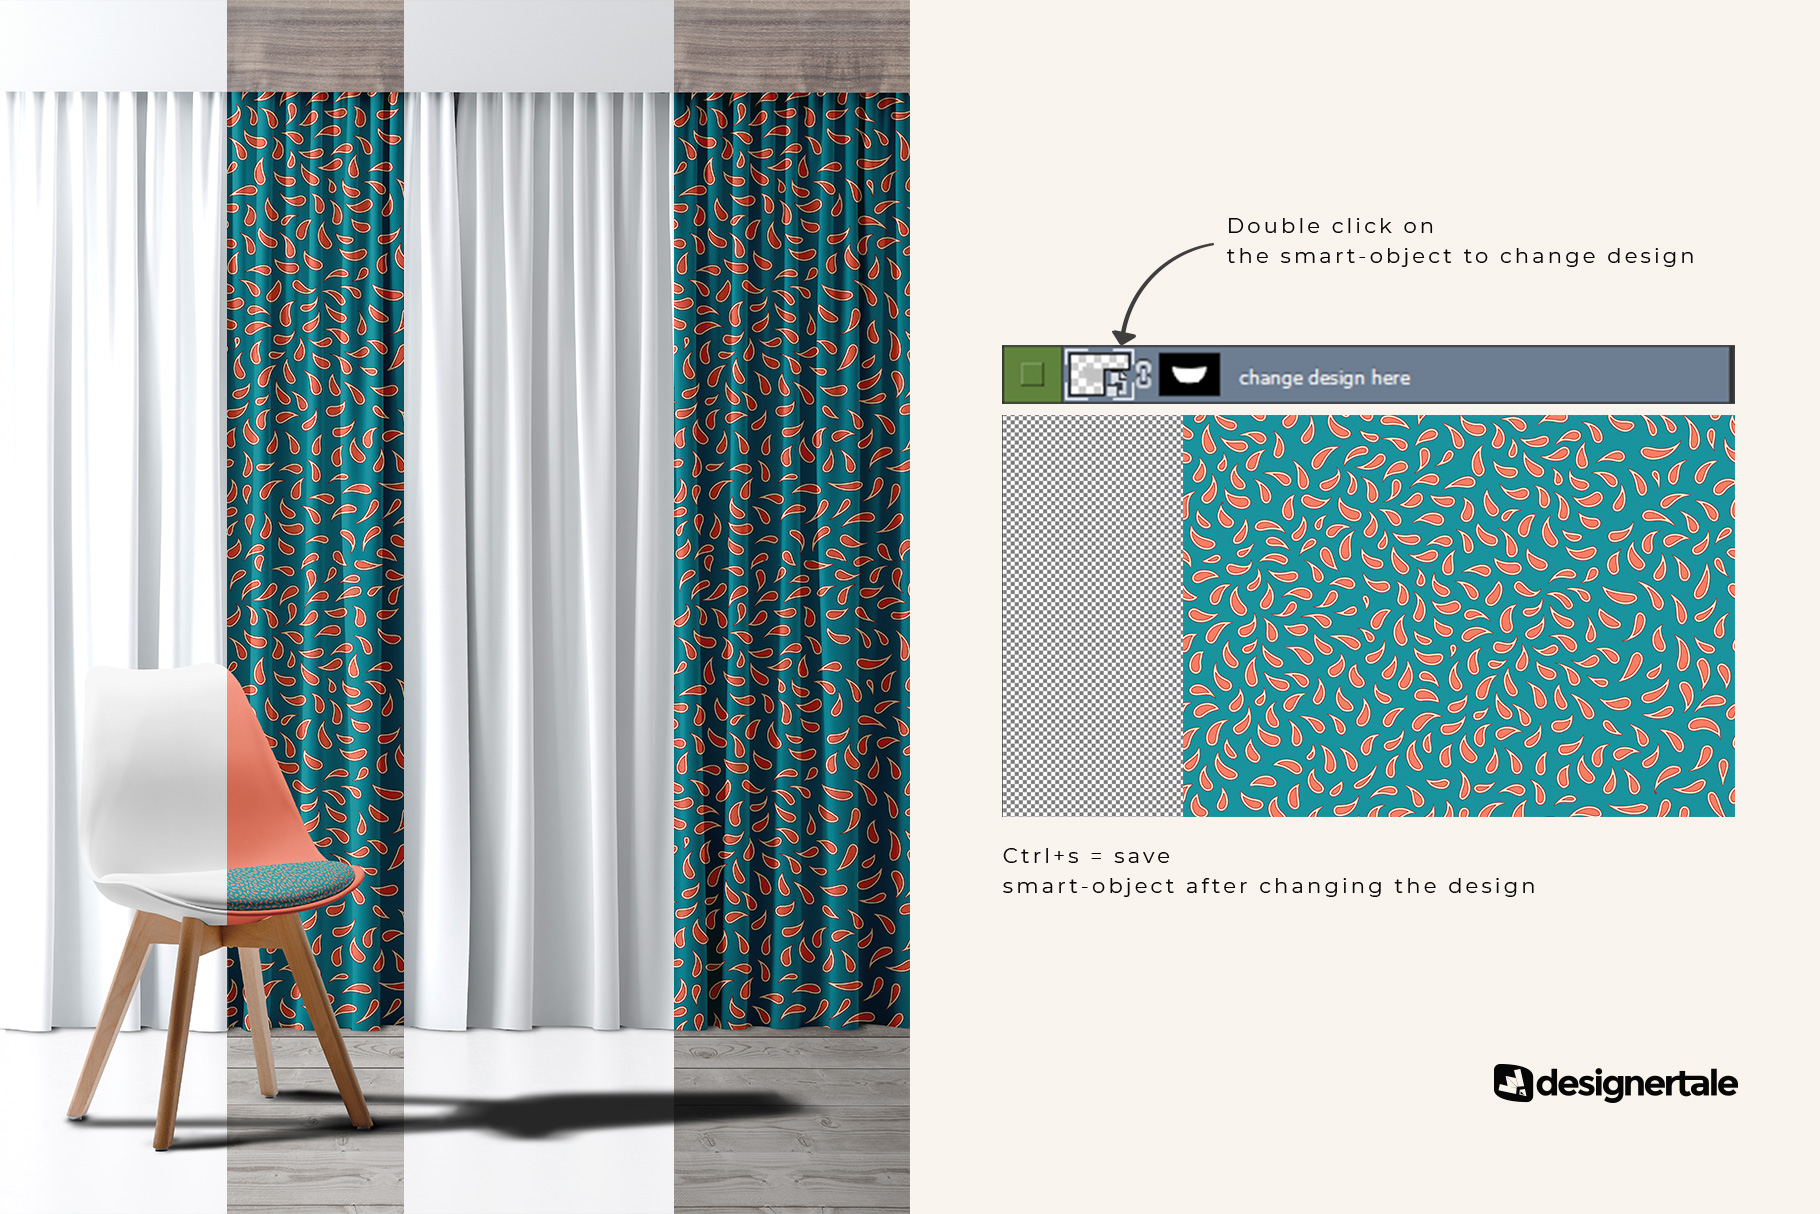 change design of the long curtain with chair mockup